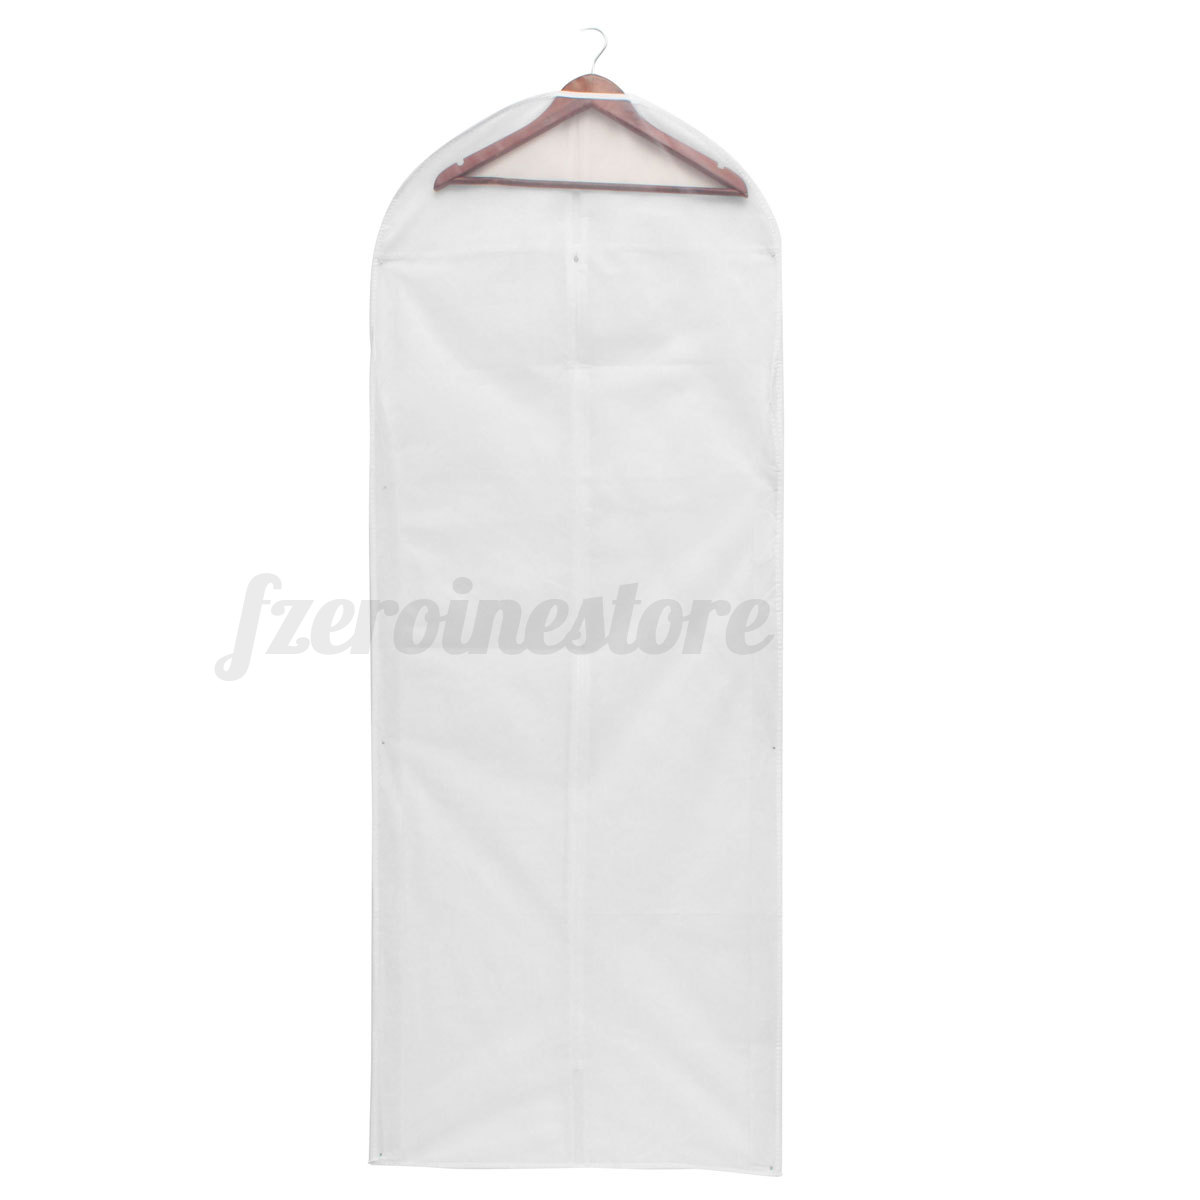 59 wedding prom dress bridal gown garment cover storage protector bag